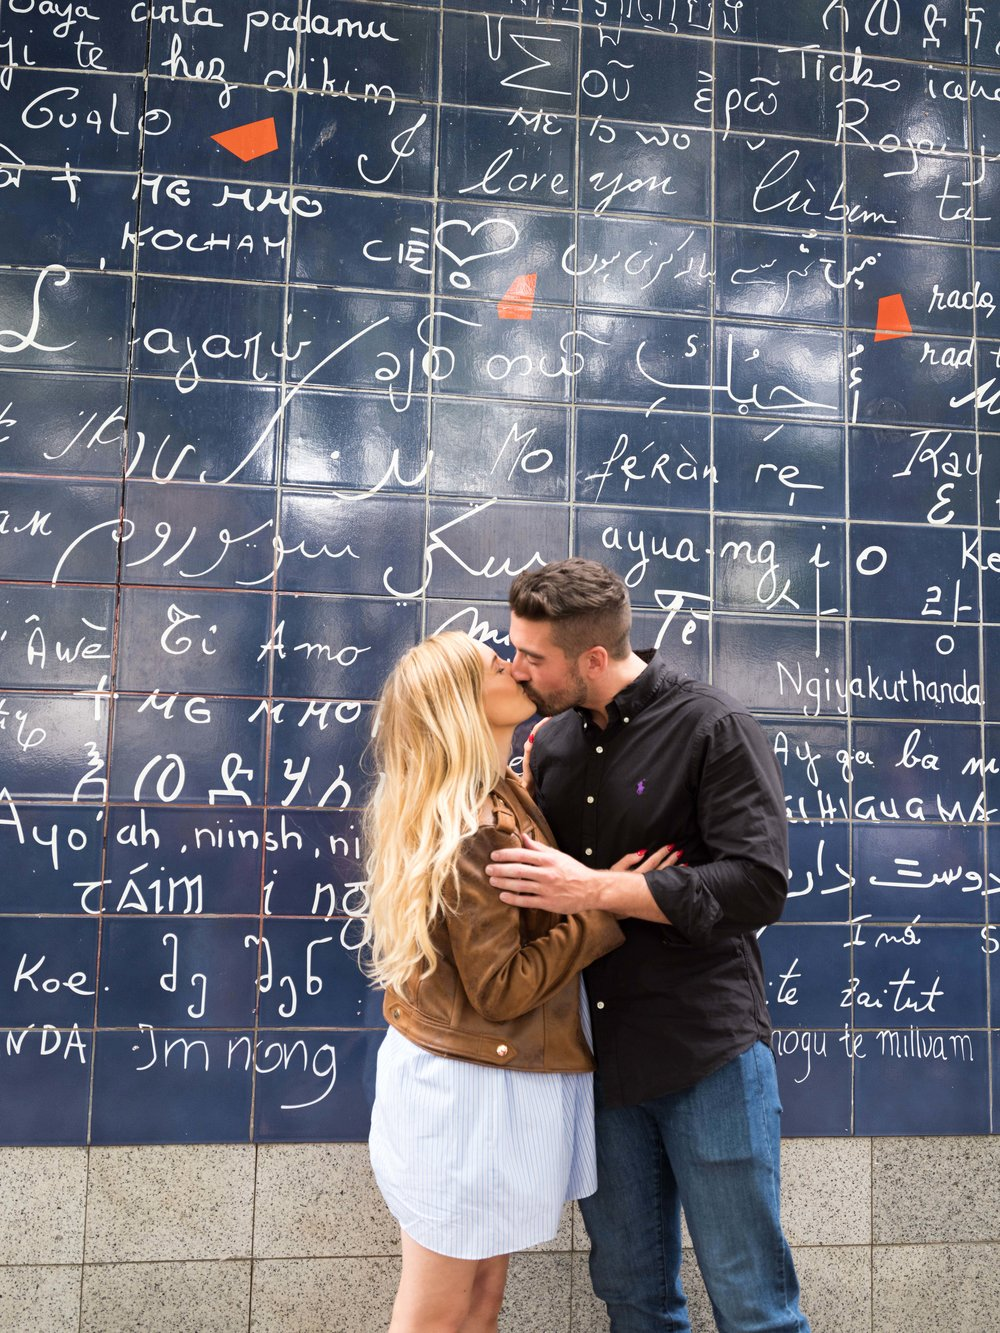 Couple kissing at the Wall of I Love Yous in Paris